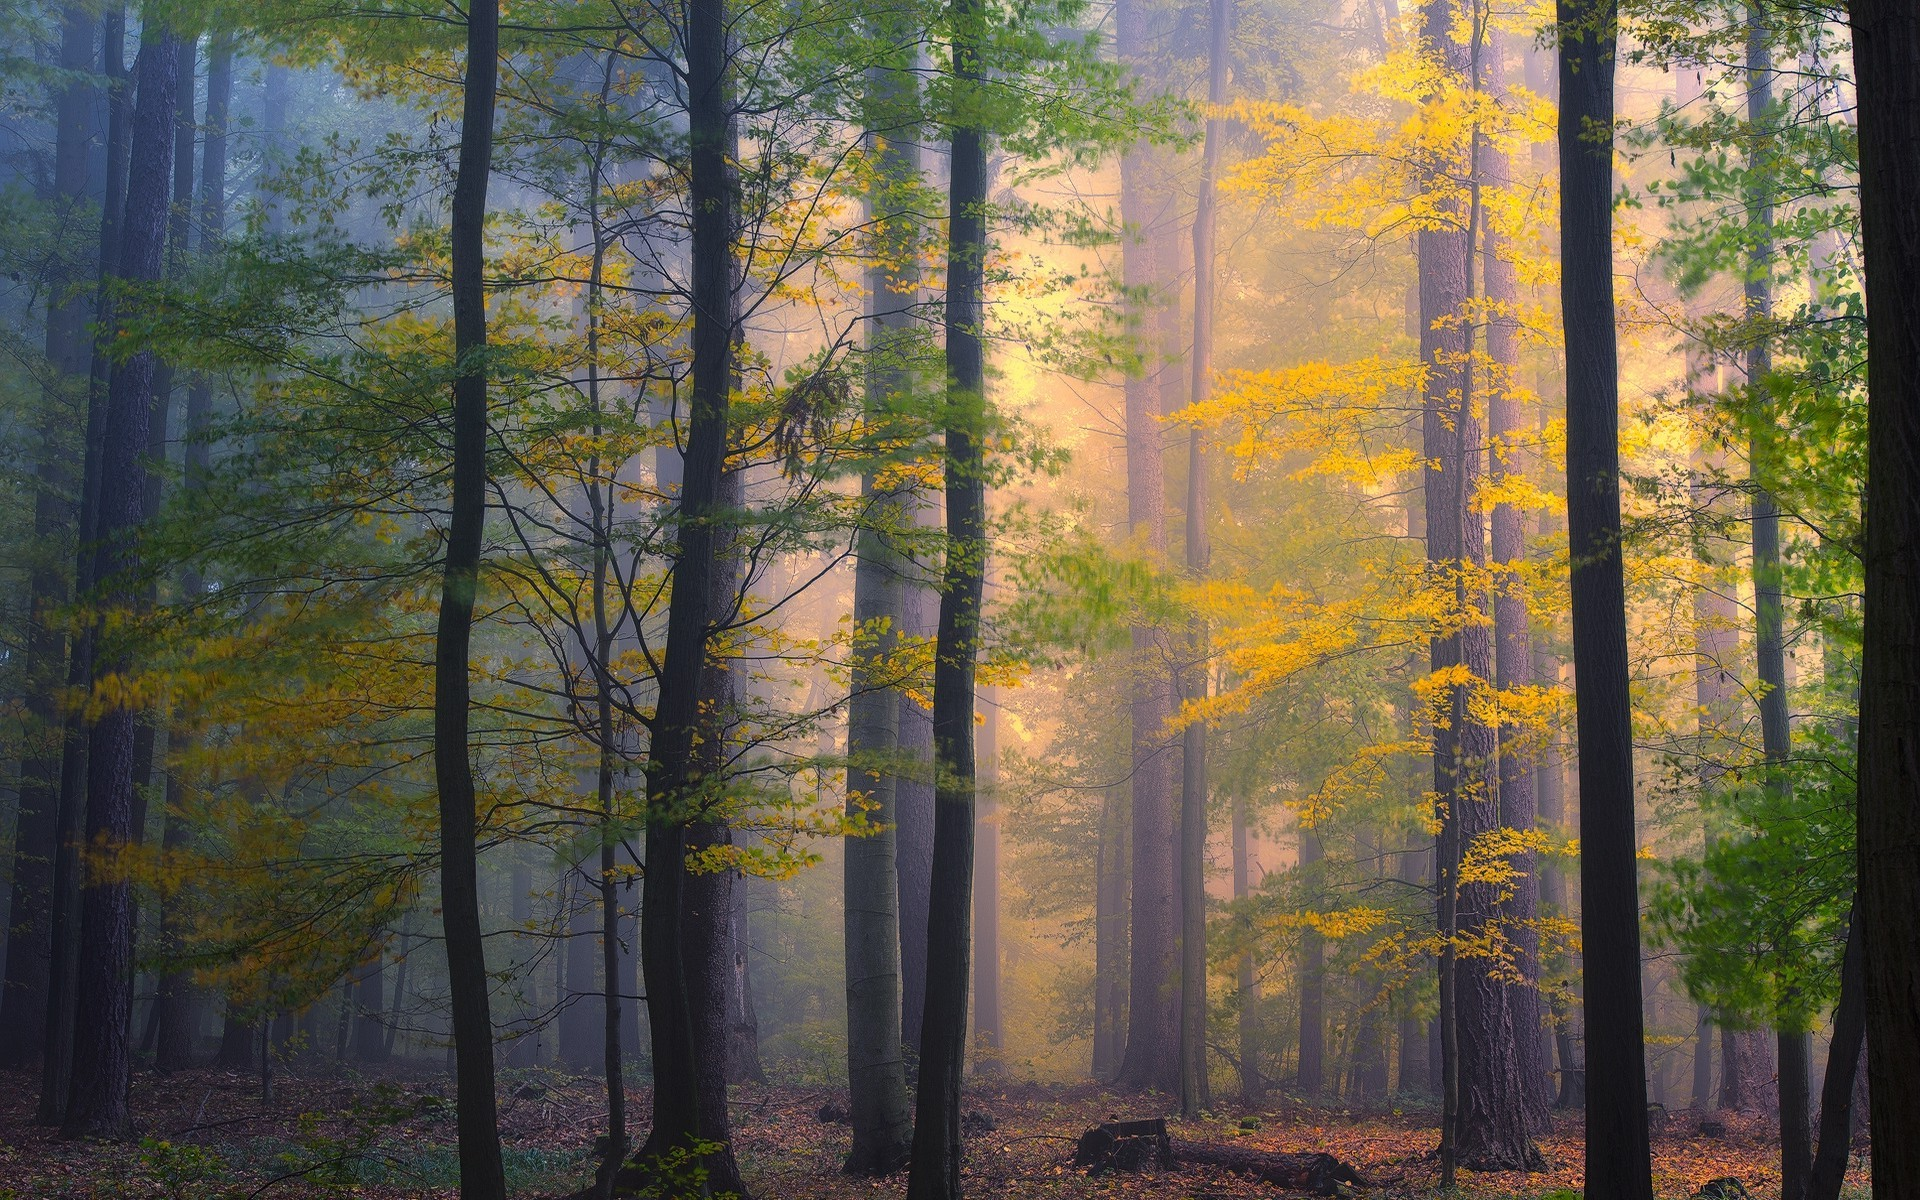 Full Screen Desktop Fall Leaves Wallpaper Nature Landscape Forest Morning Mist Fall Leaves